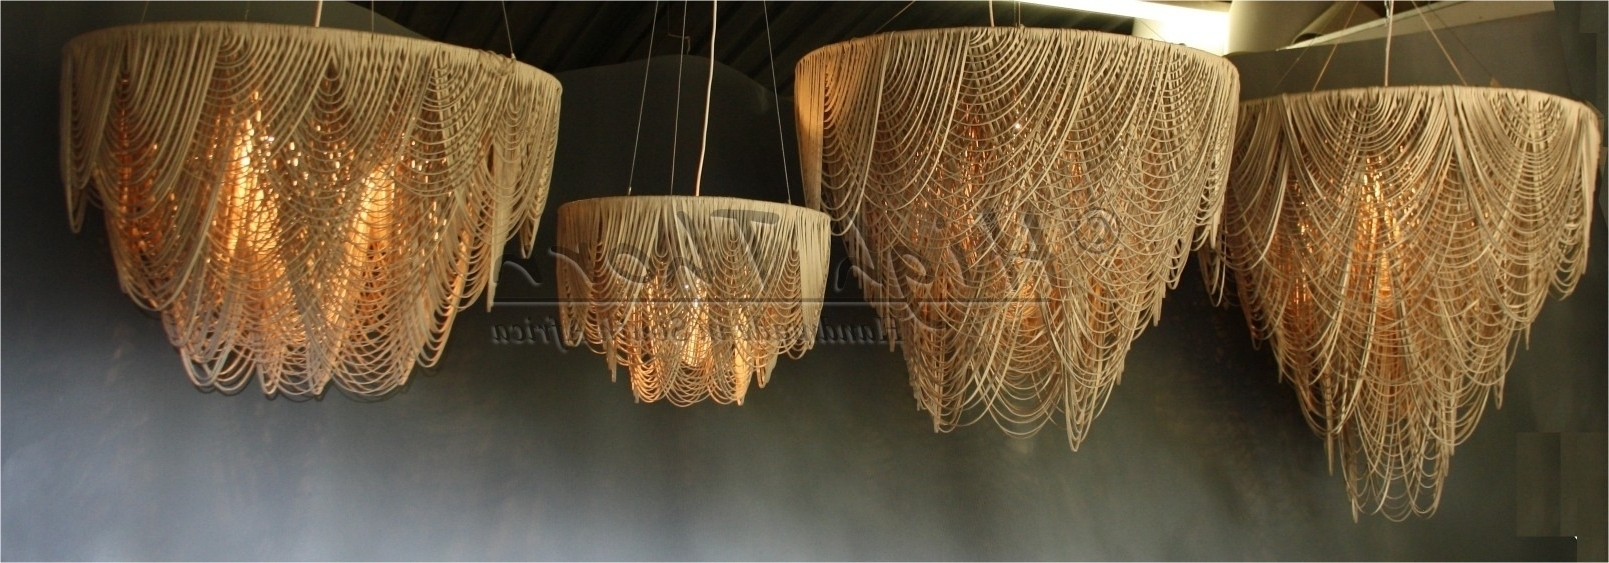 Leather Chandeliers Intended For Current High Thorn – Handmade In South Africa – Lighting, Furniture, Home (View 10 of 15)